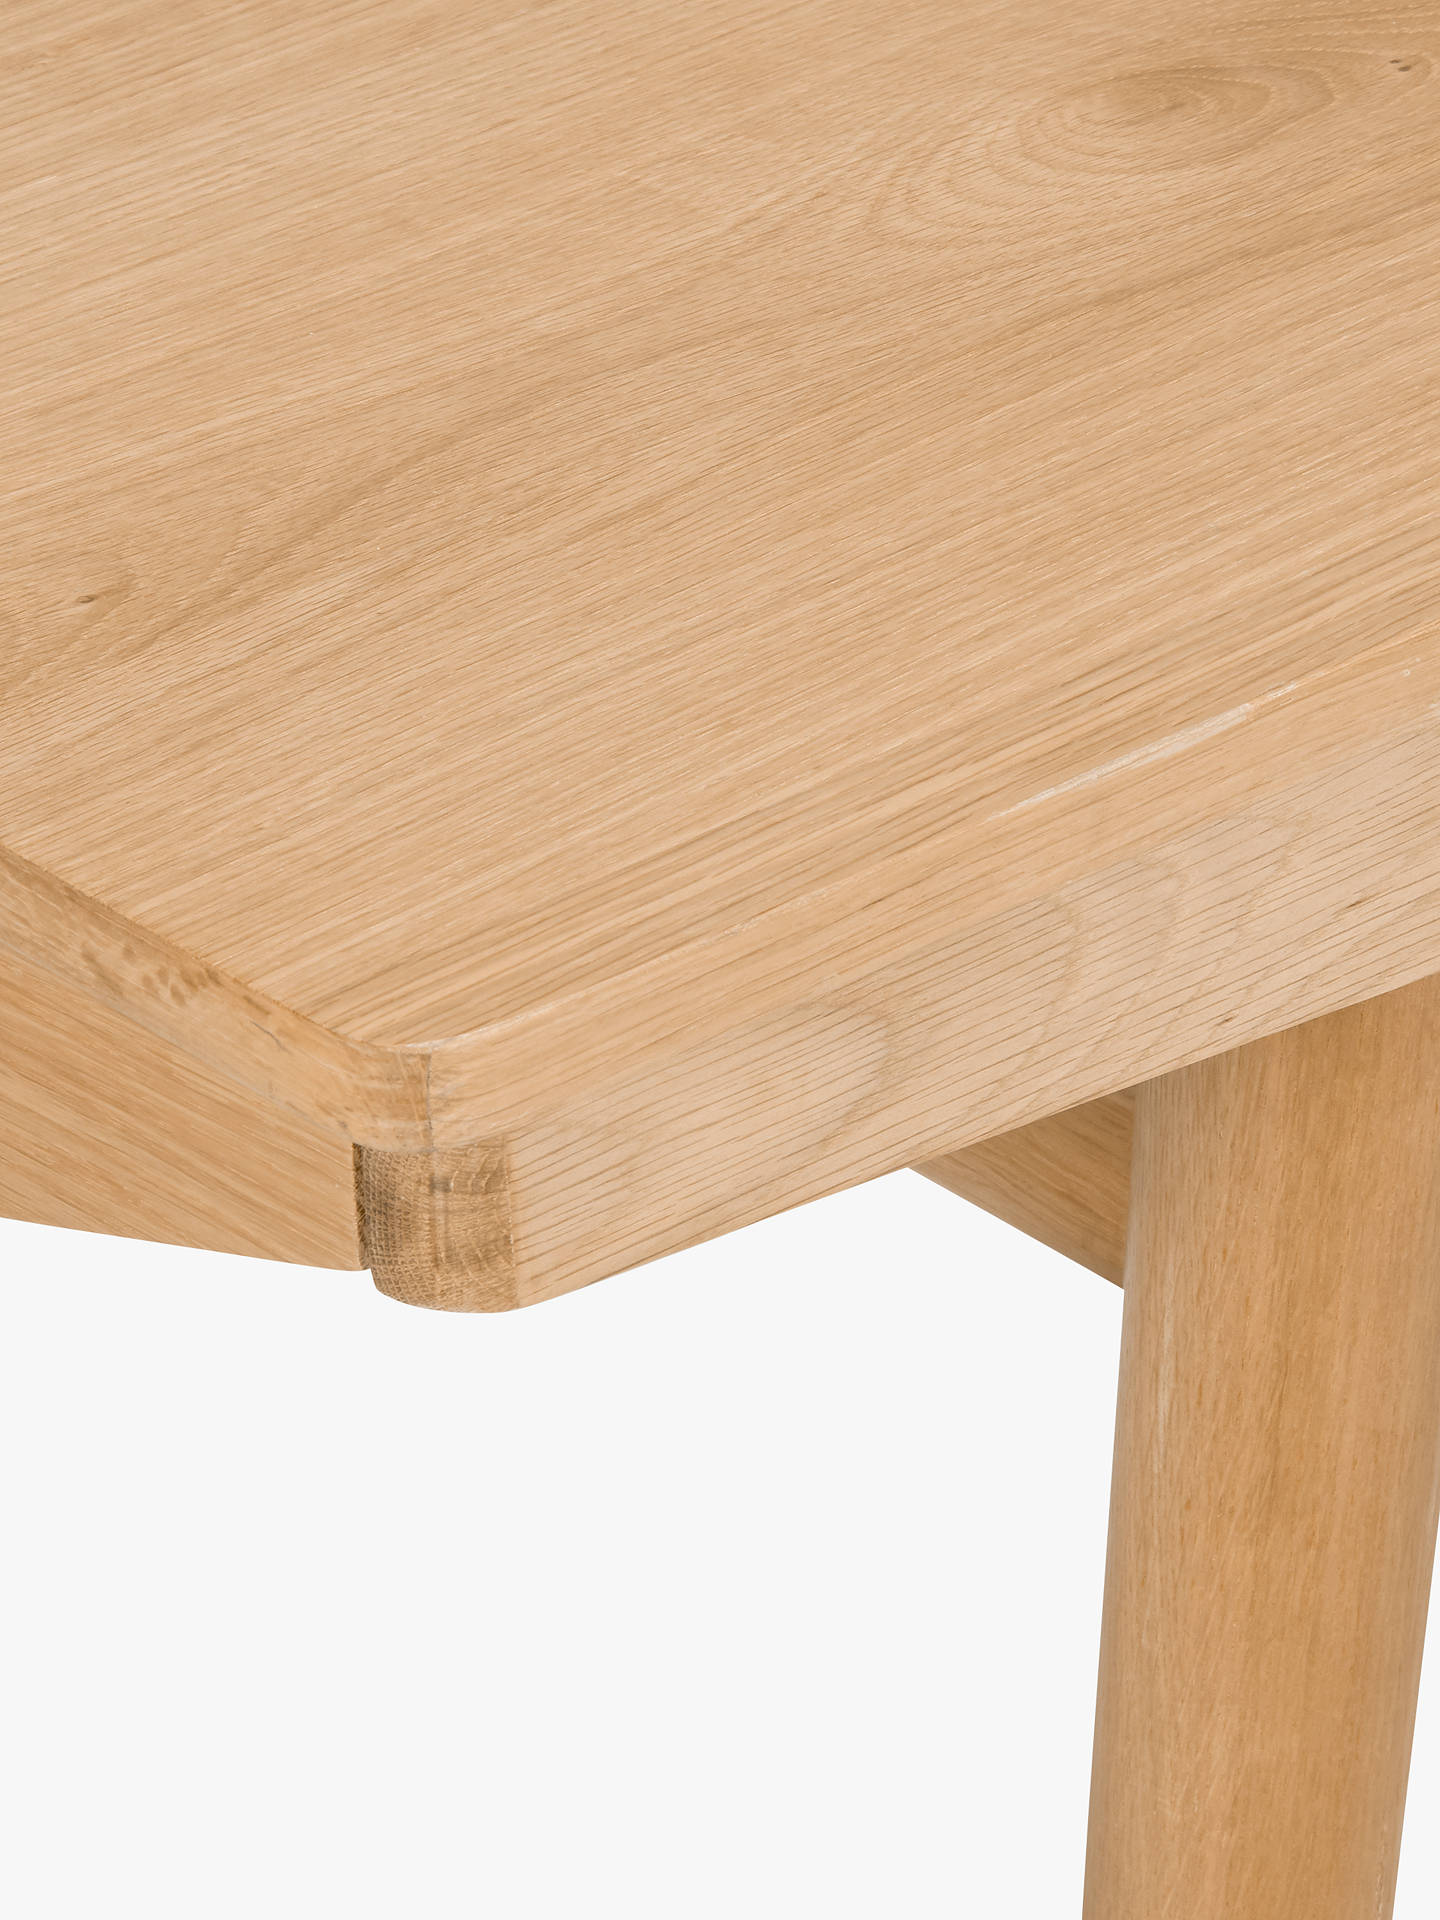 BuyHouse by John Lewis Bow 6-8 Seater Extending Dining Table, Oak Online at johnlewis.com